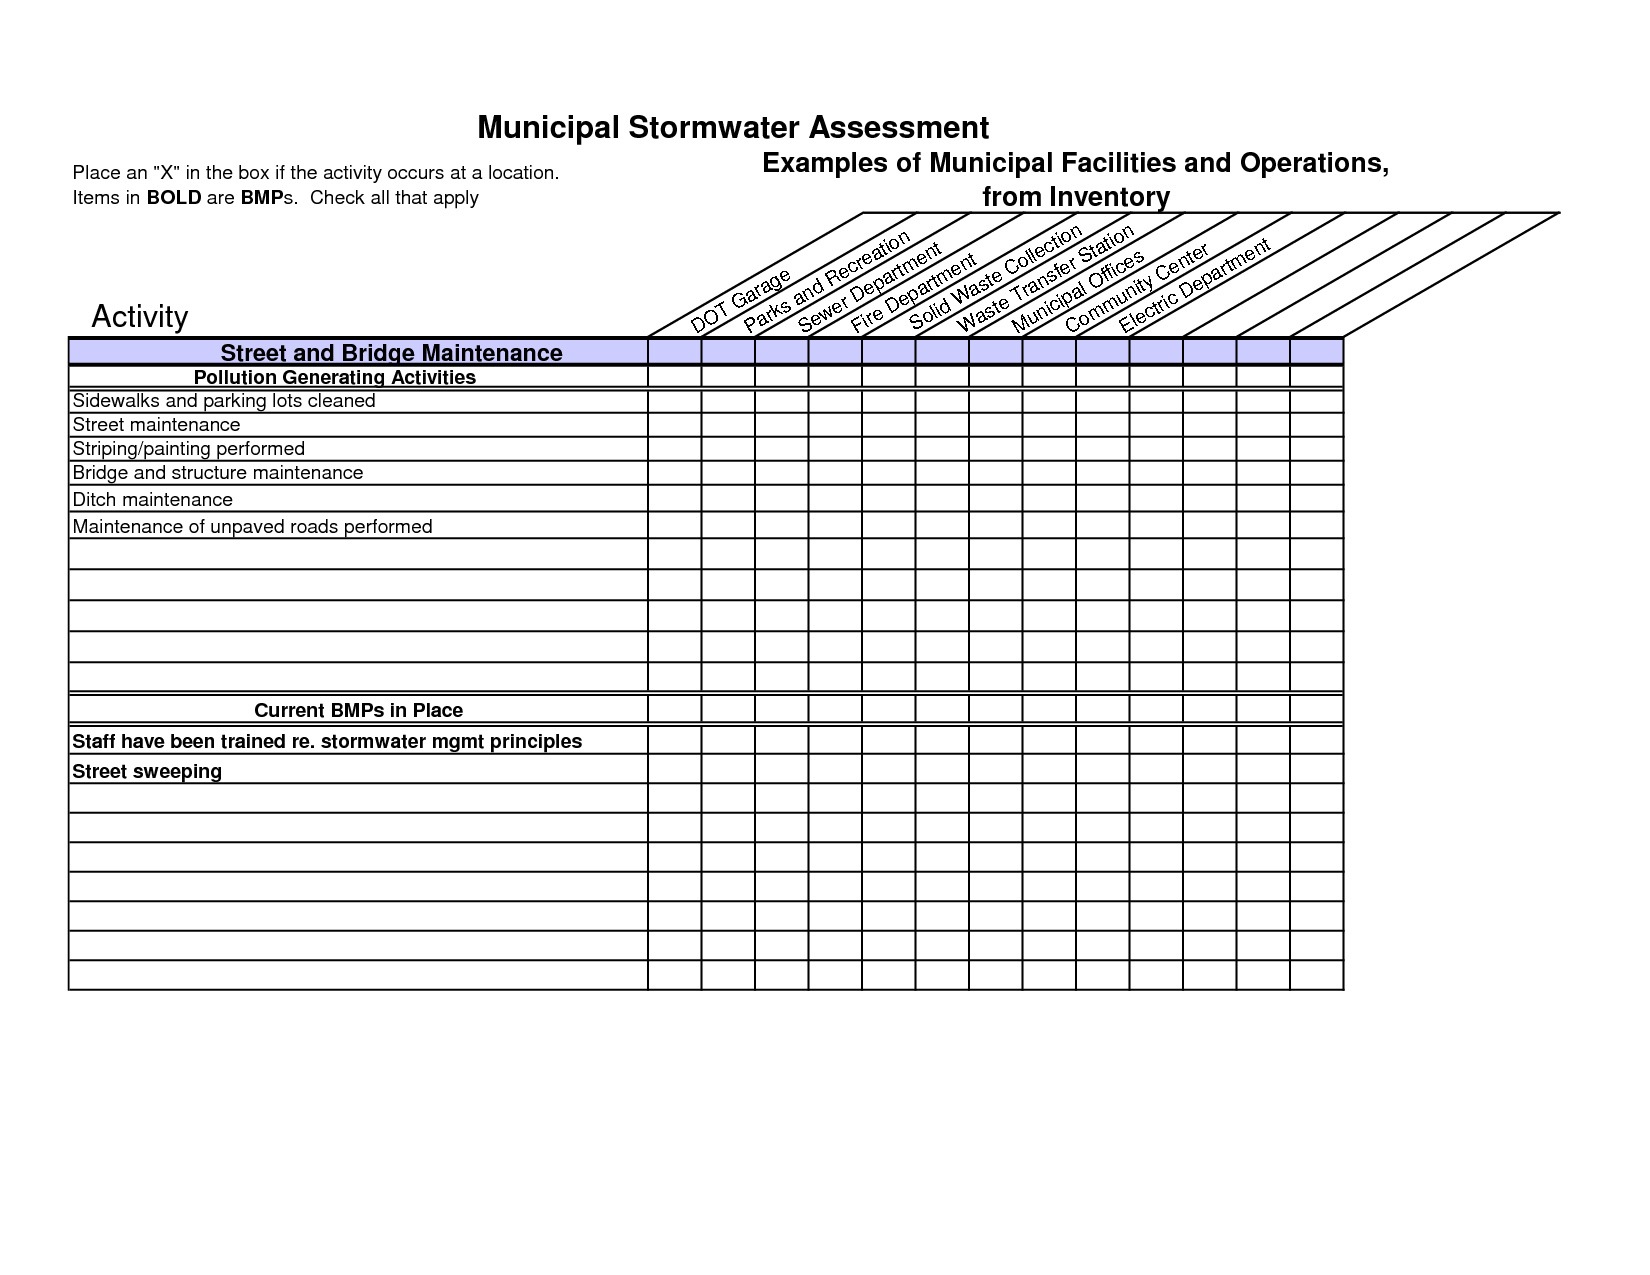 Excel Inventory Database Template and Restaurant Liquor Inventory Spreadsheet Google Search